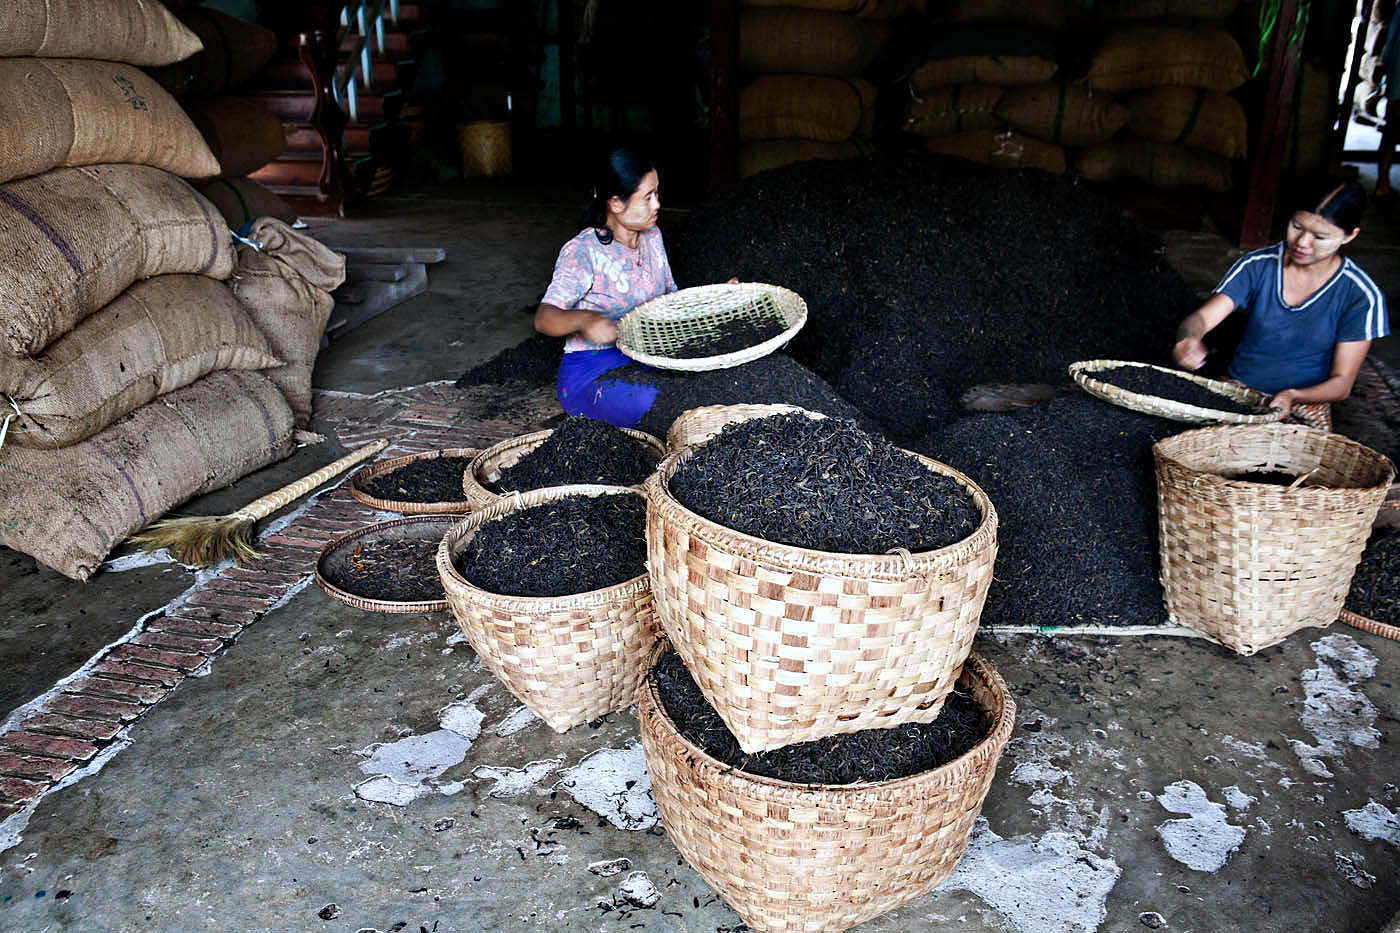 Dried tea is sorted and prepared for shipping in one of manyhomes along the manin street of Namshan.